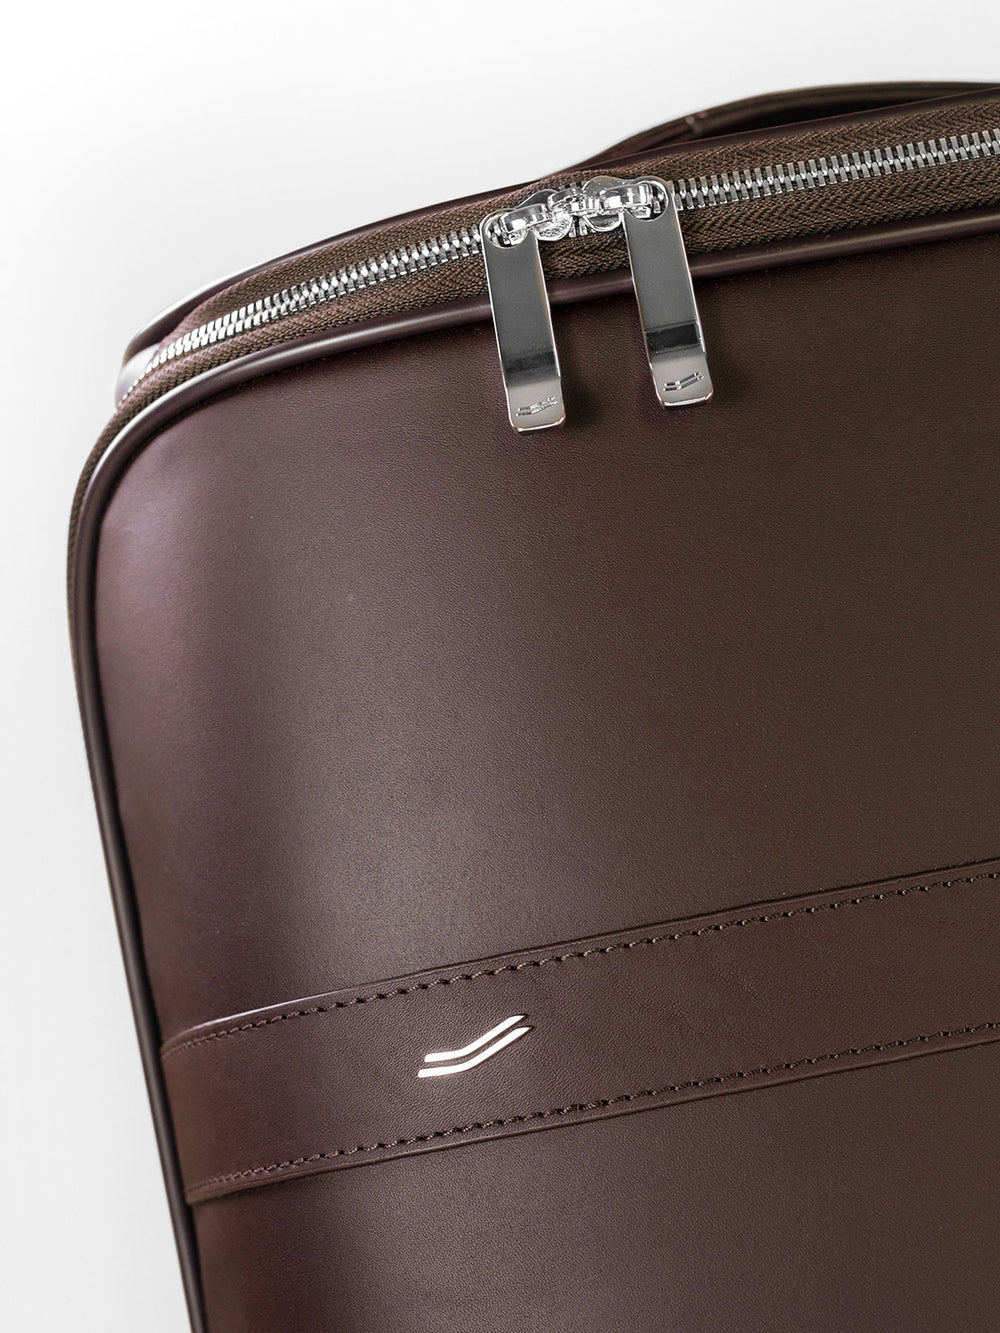 f38 carry on luggage in high quality italian brown leather braunes leder